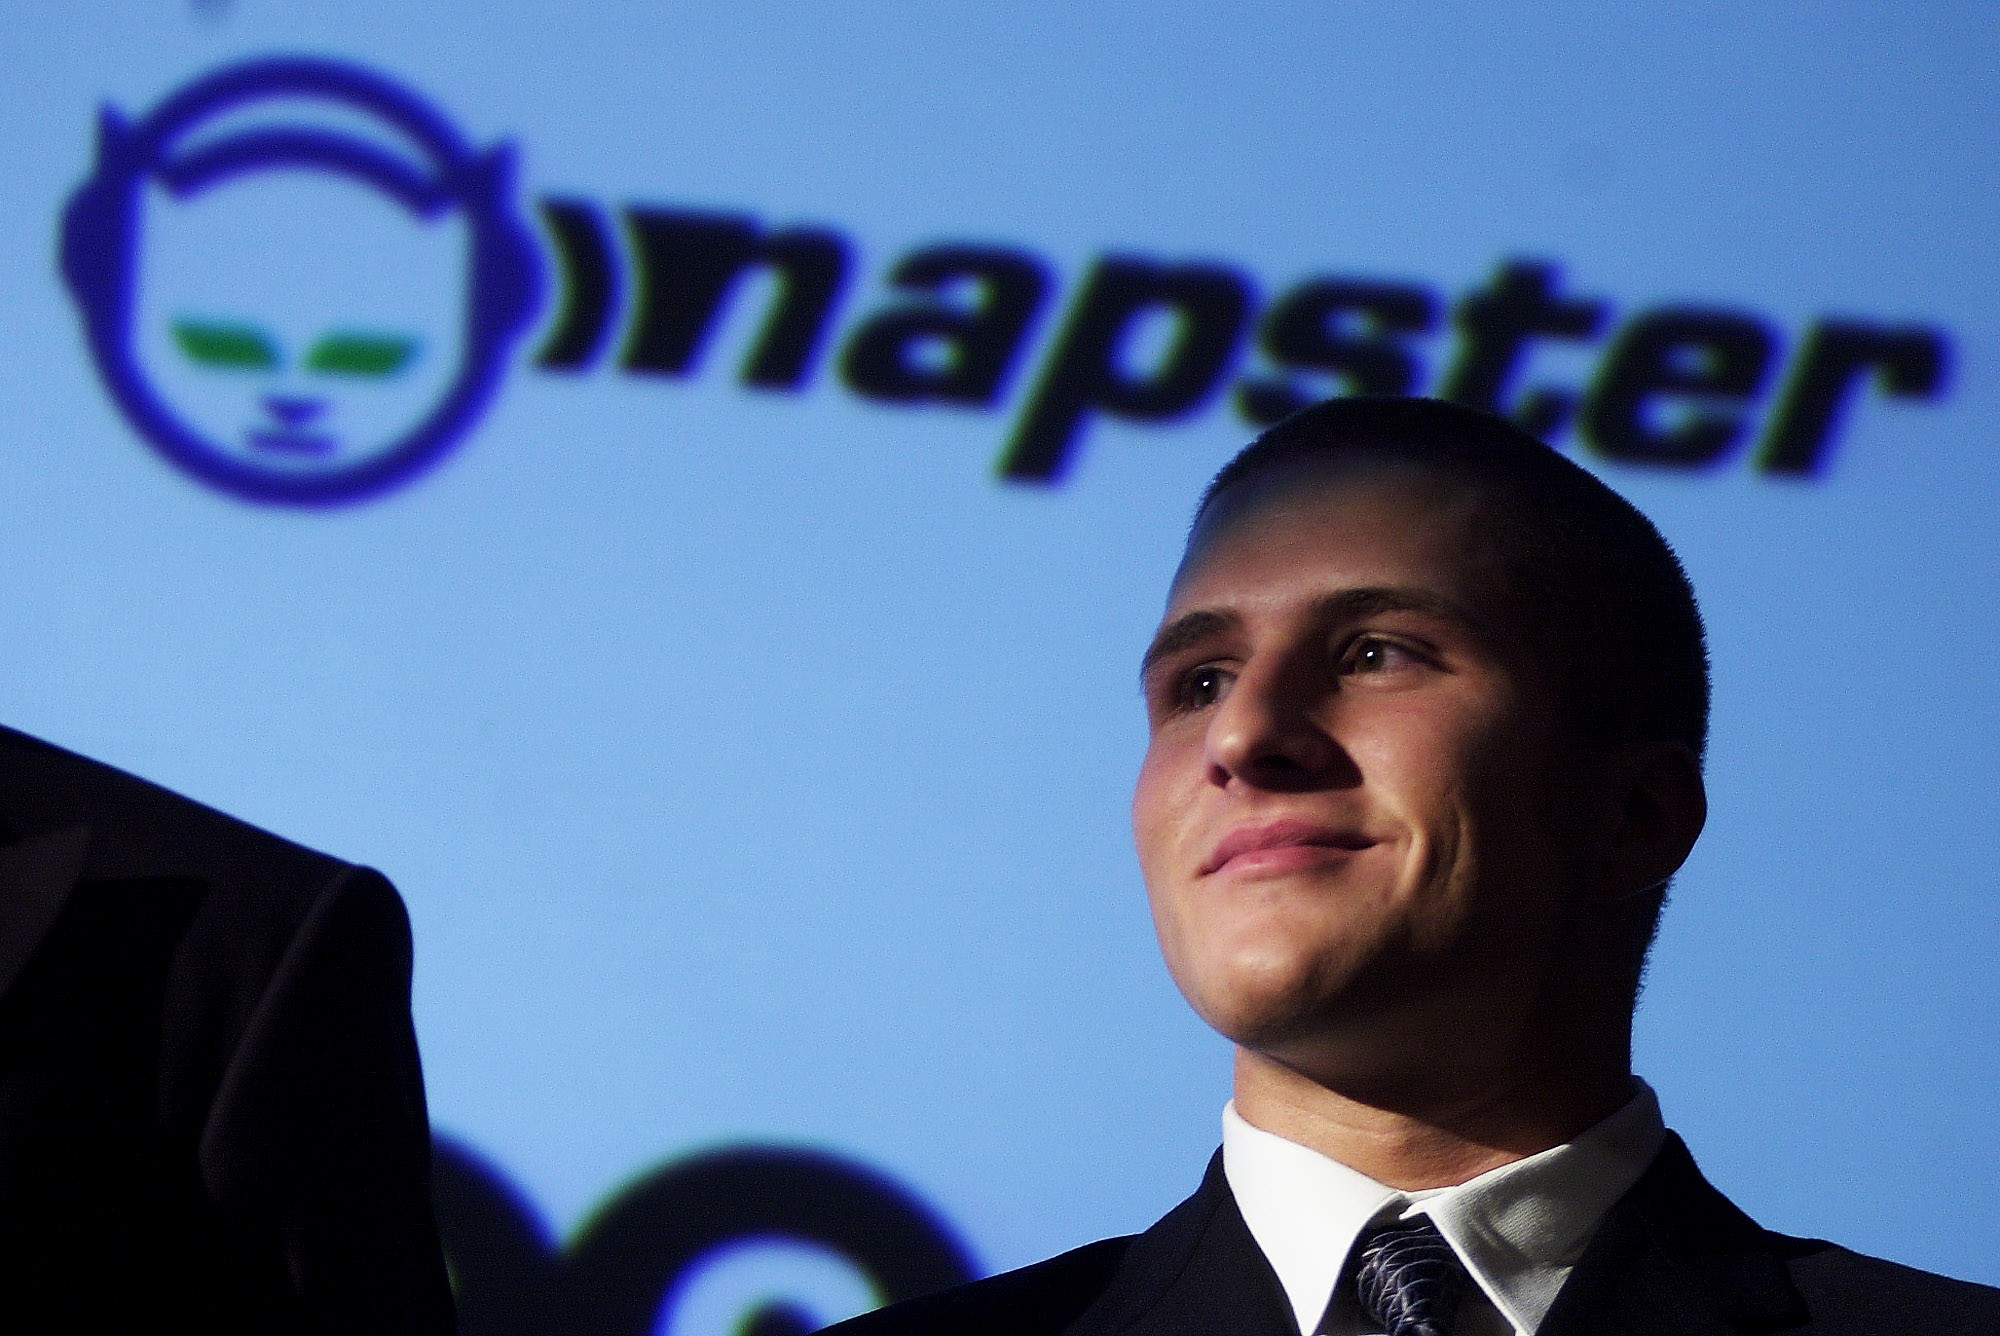 Oversharing: How Napster Nearly Killed the Music Industry